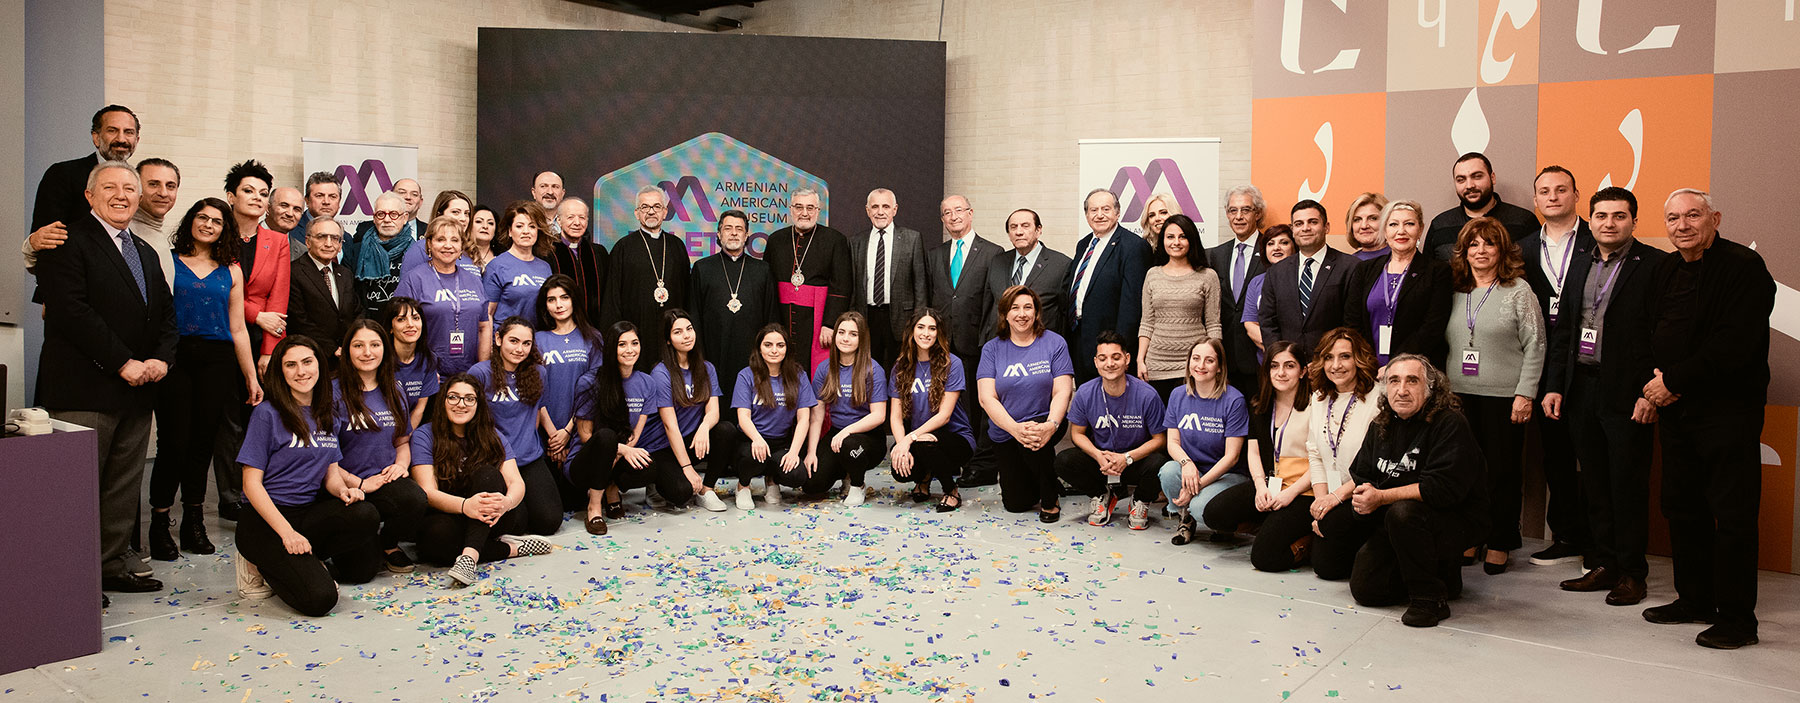 Armenian American Museum Leadership with Telethon Committee Members, Volunteers & Crew